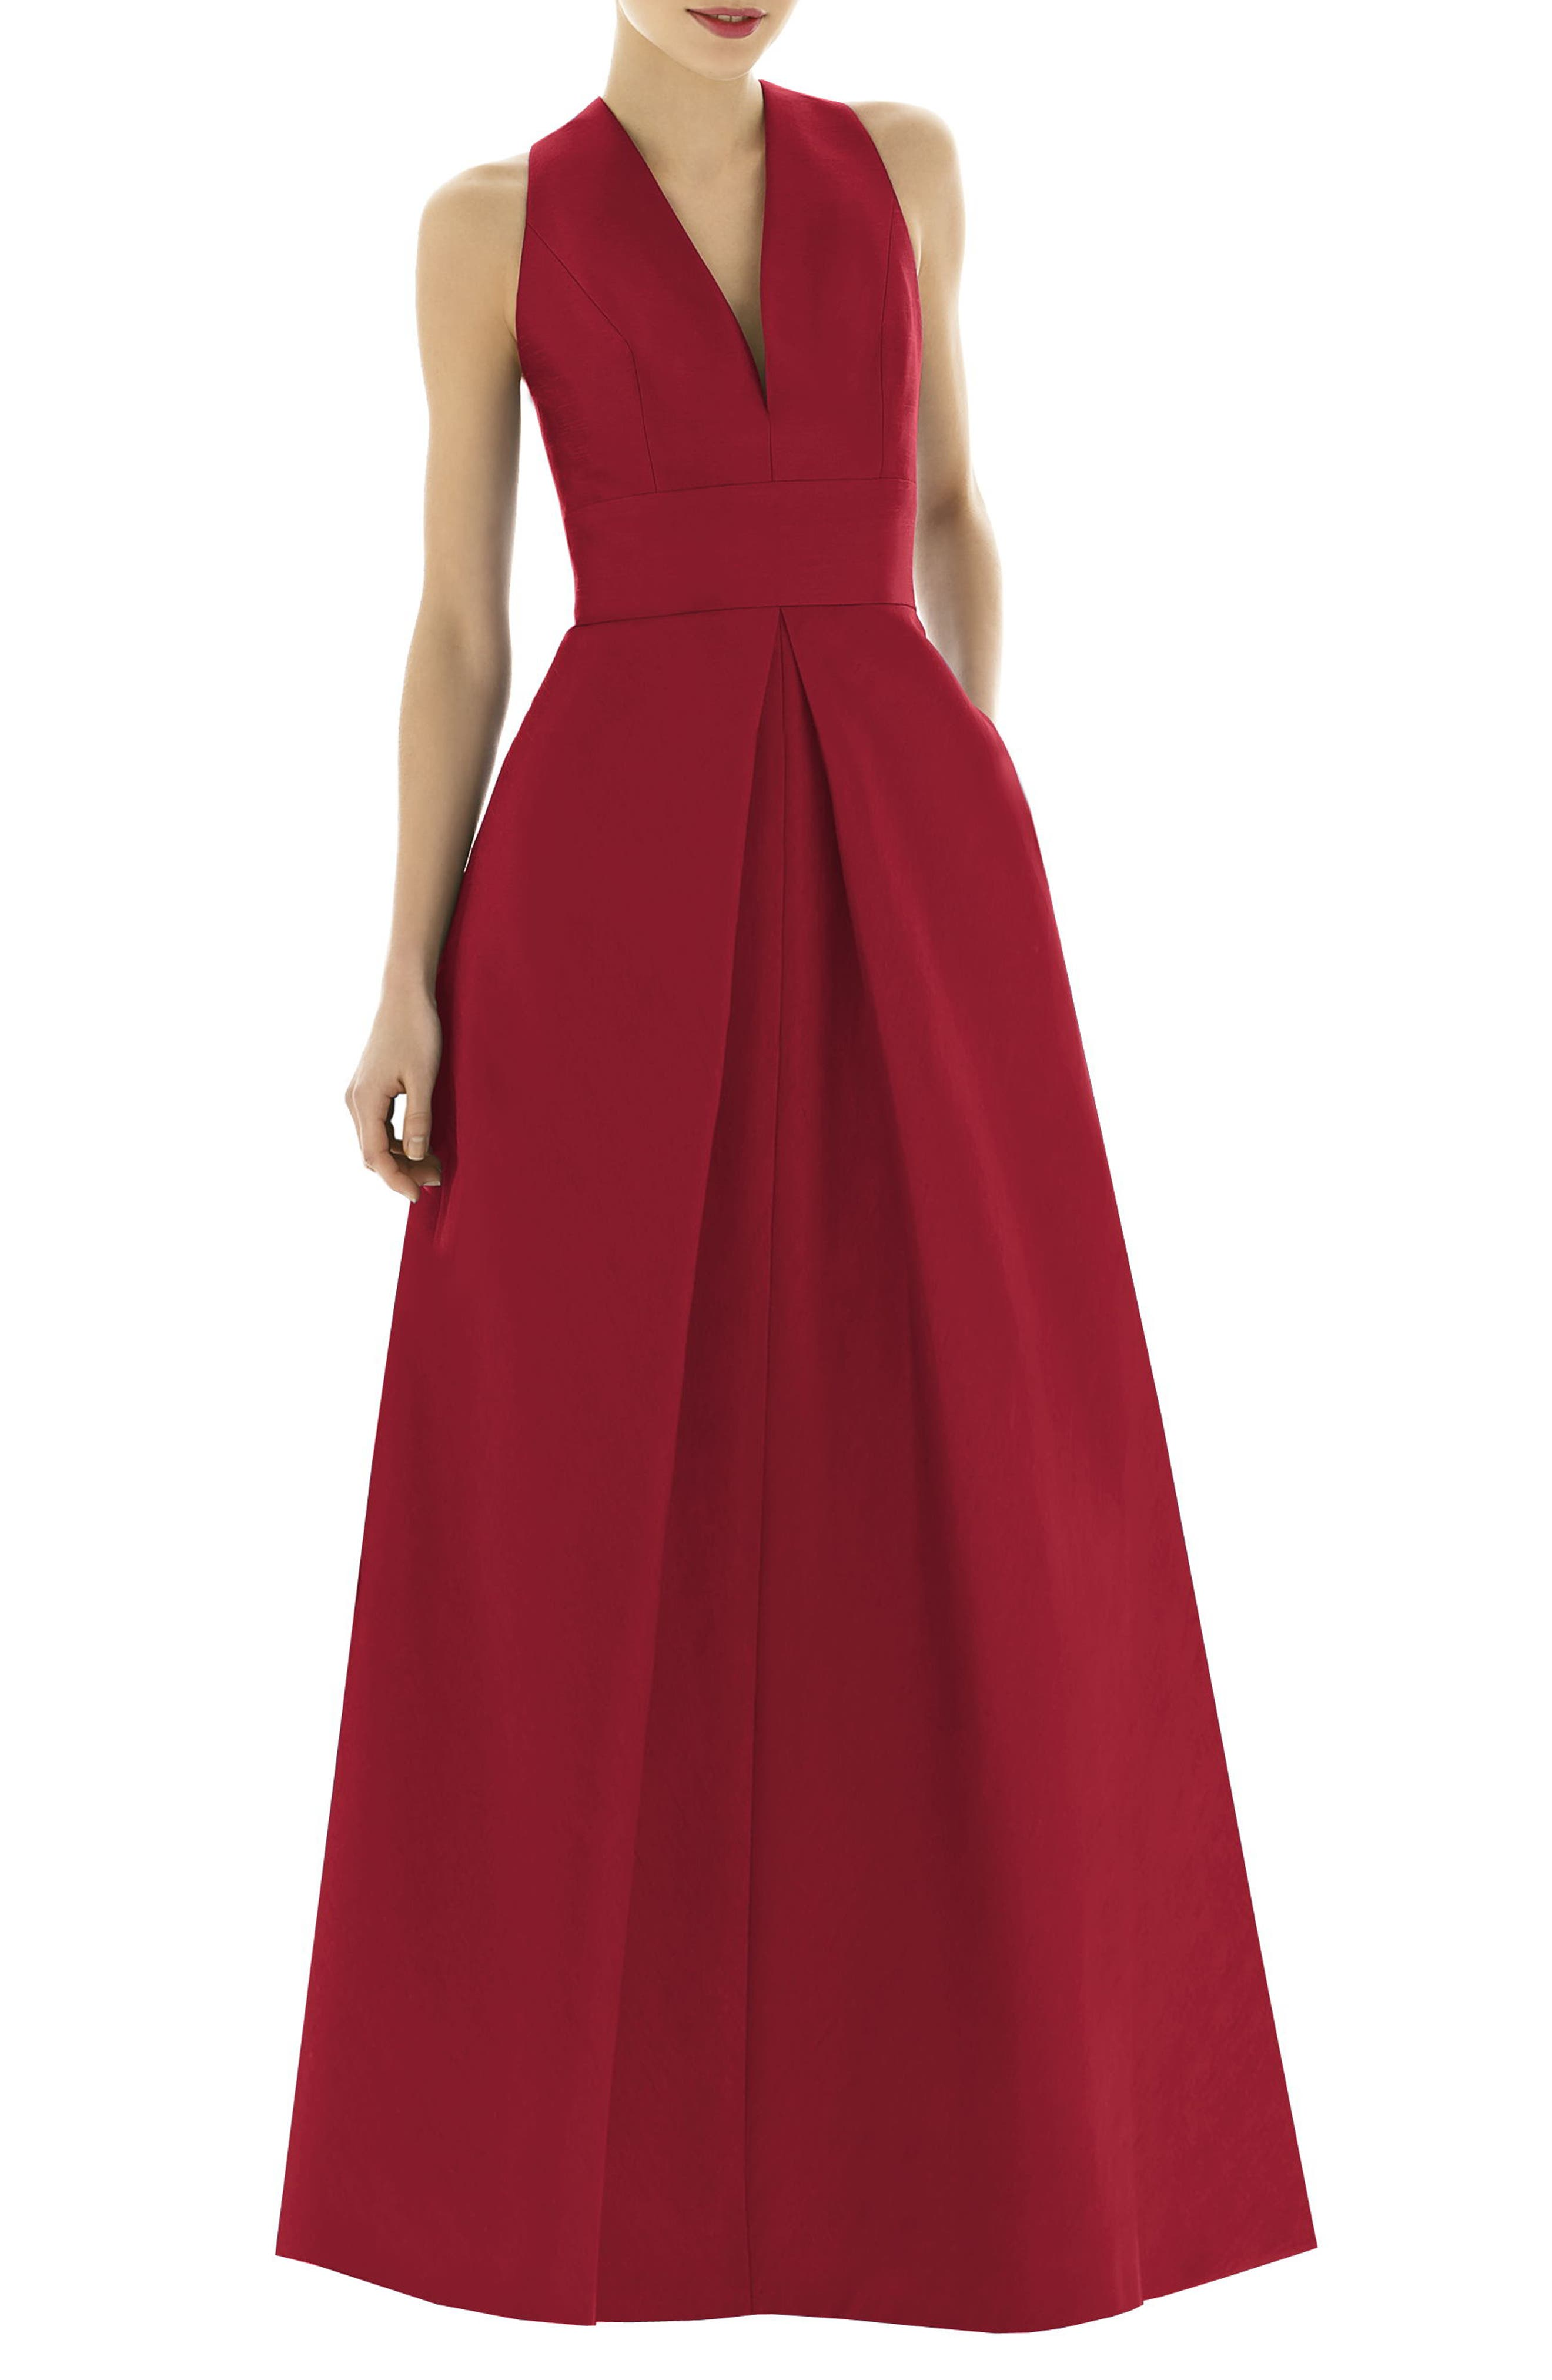 1950s Clothing Womens Alfred Sung V-Neck Dupioni Evening Gown Size 6 - Red $242.00 AT vintagedancer.com